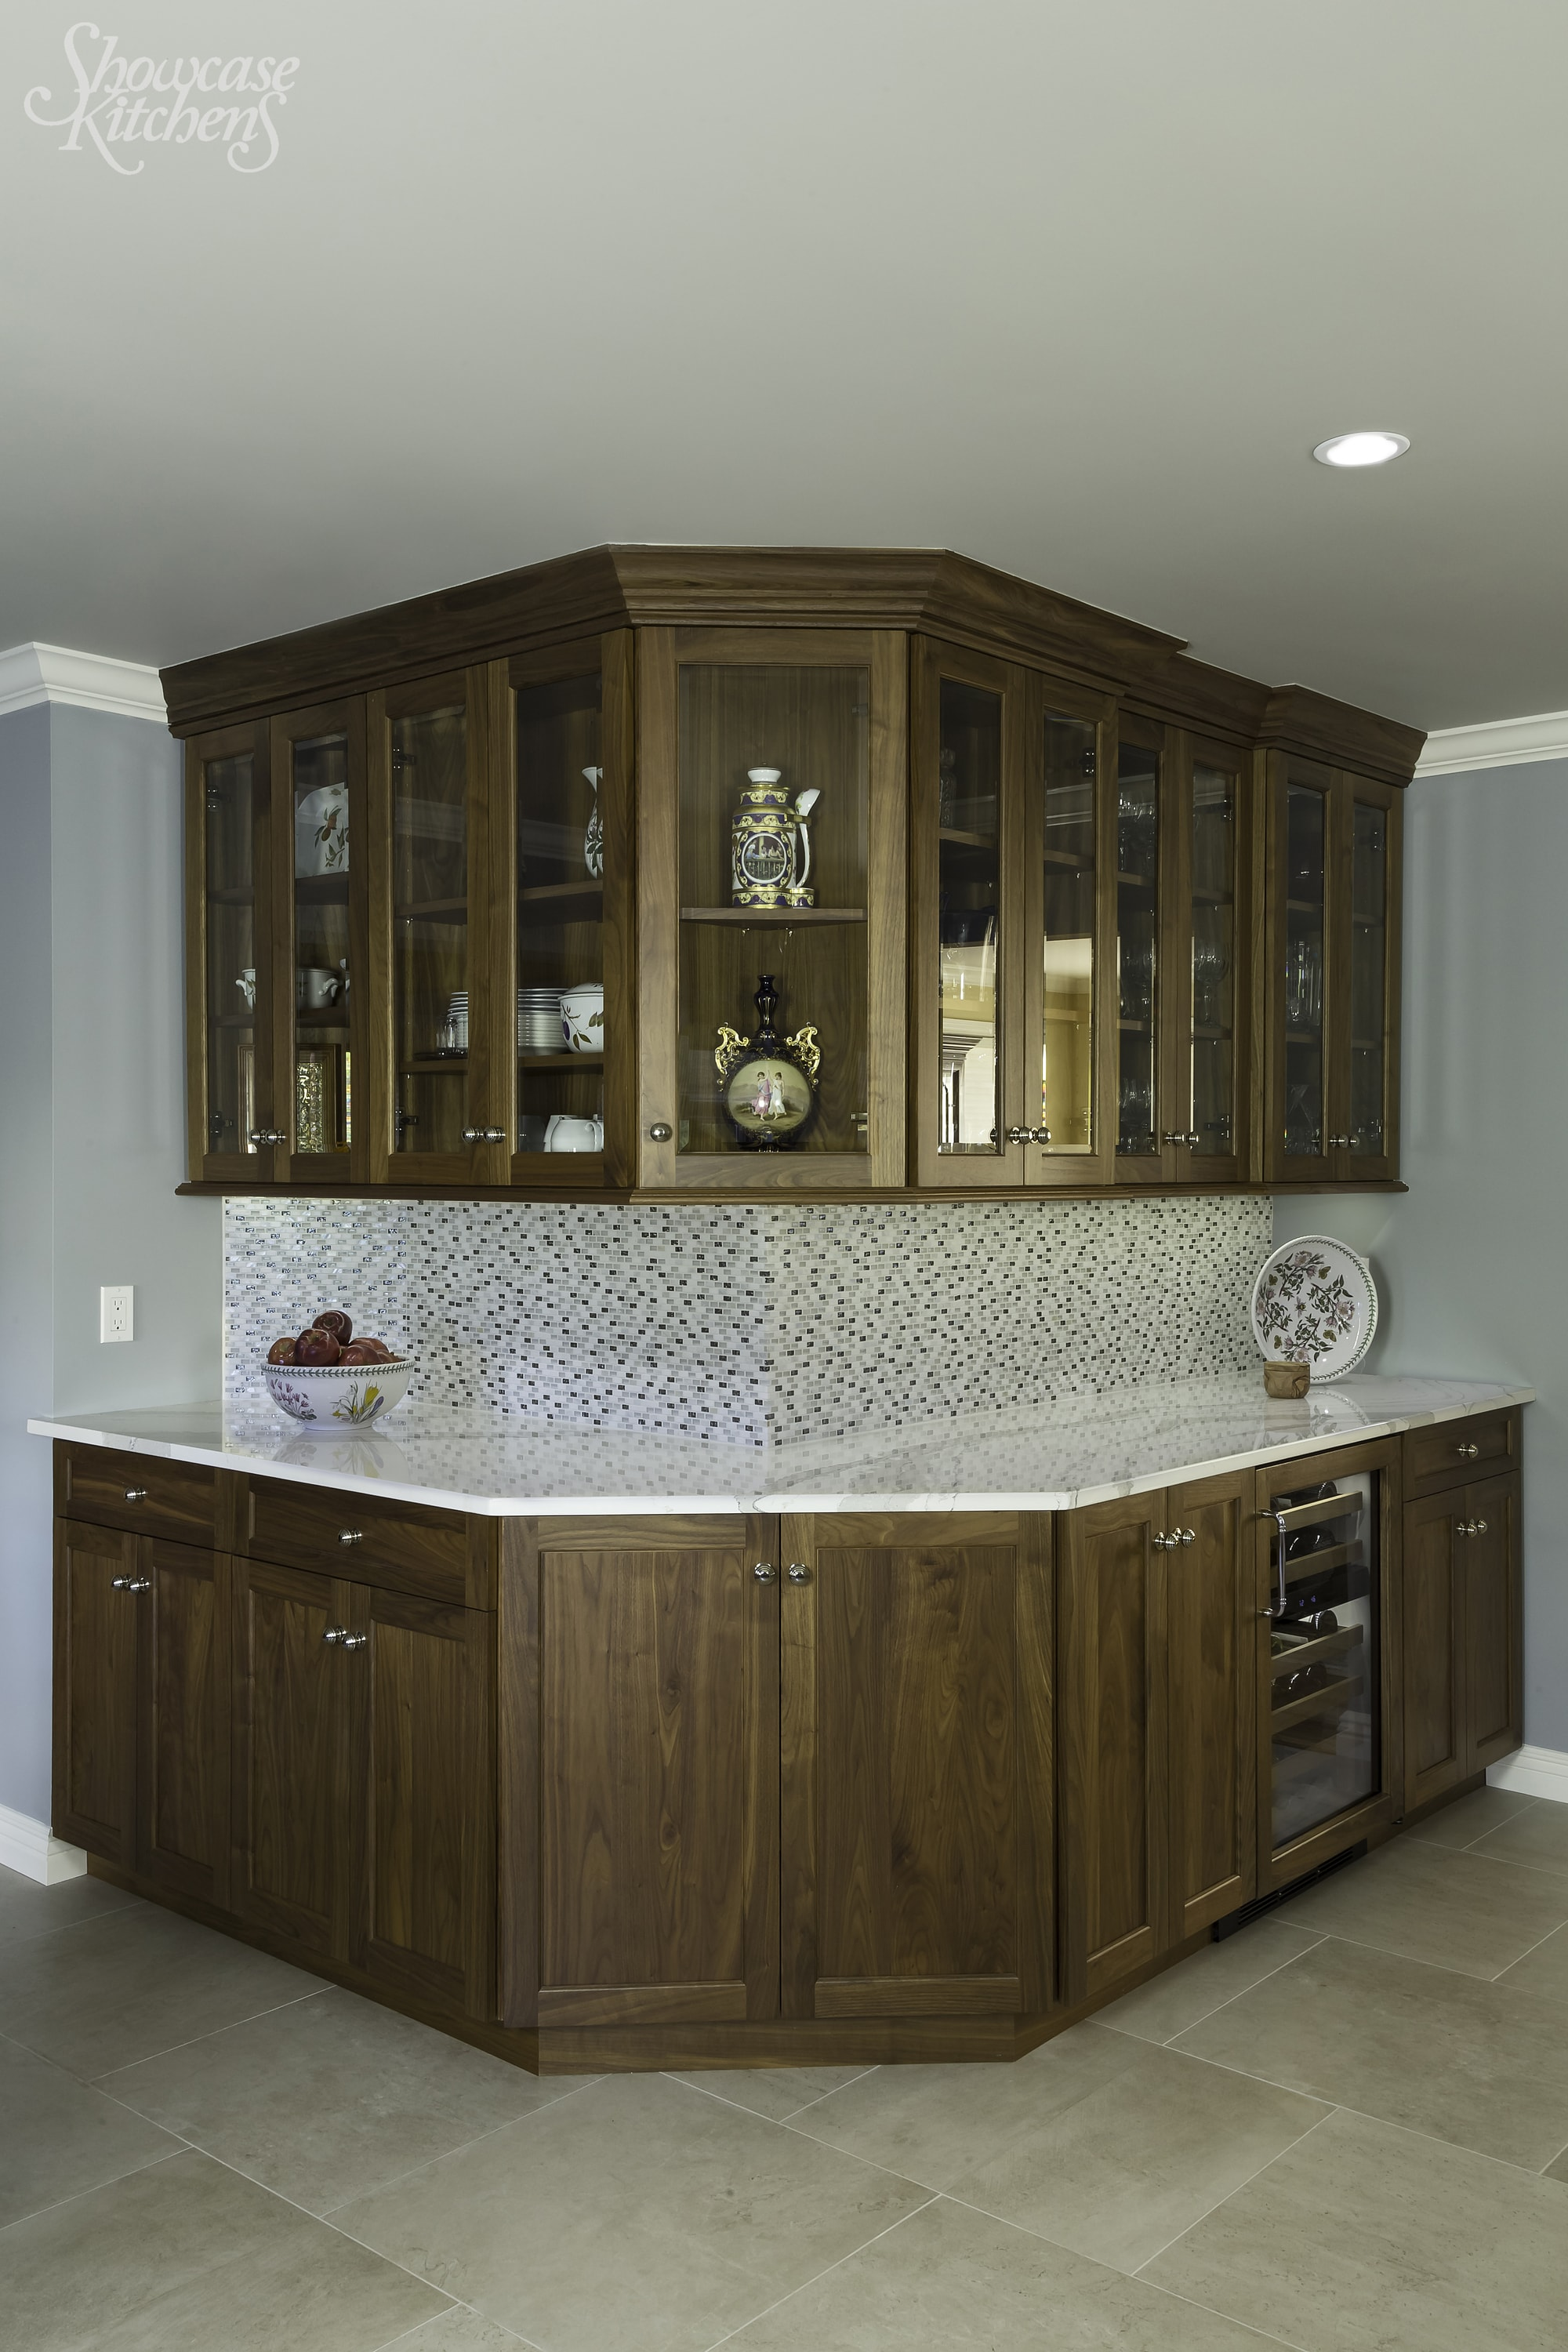 Transitional style kitchen with white marble countertop